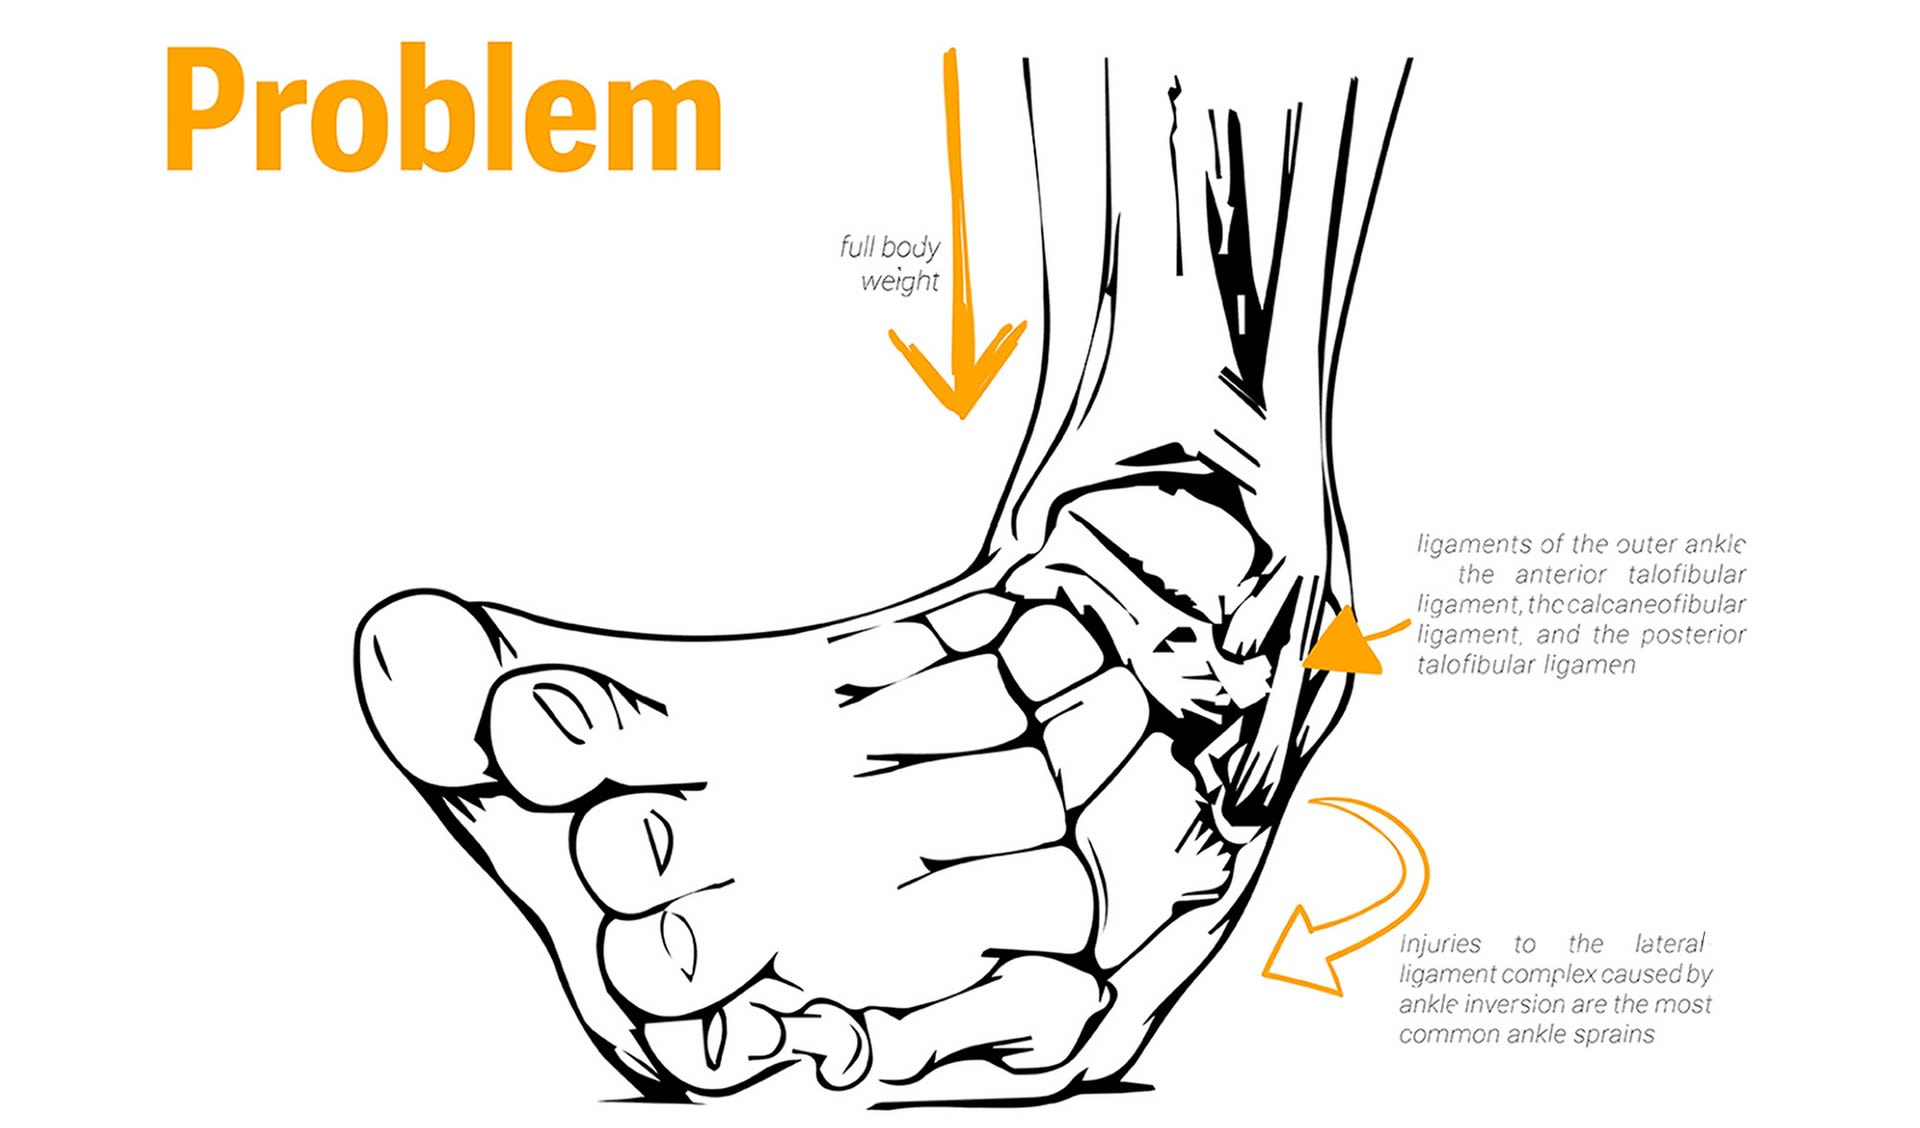 85% of ankle injuries are lateral ankle sprains